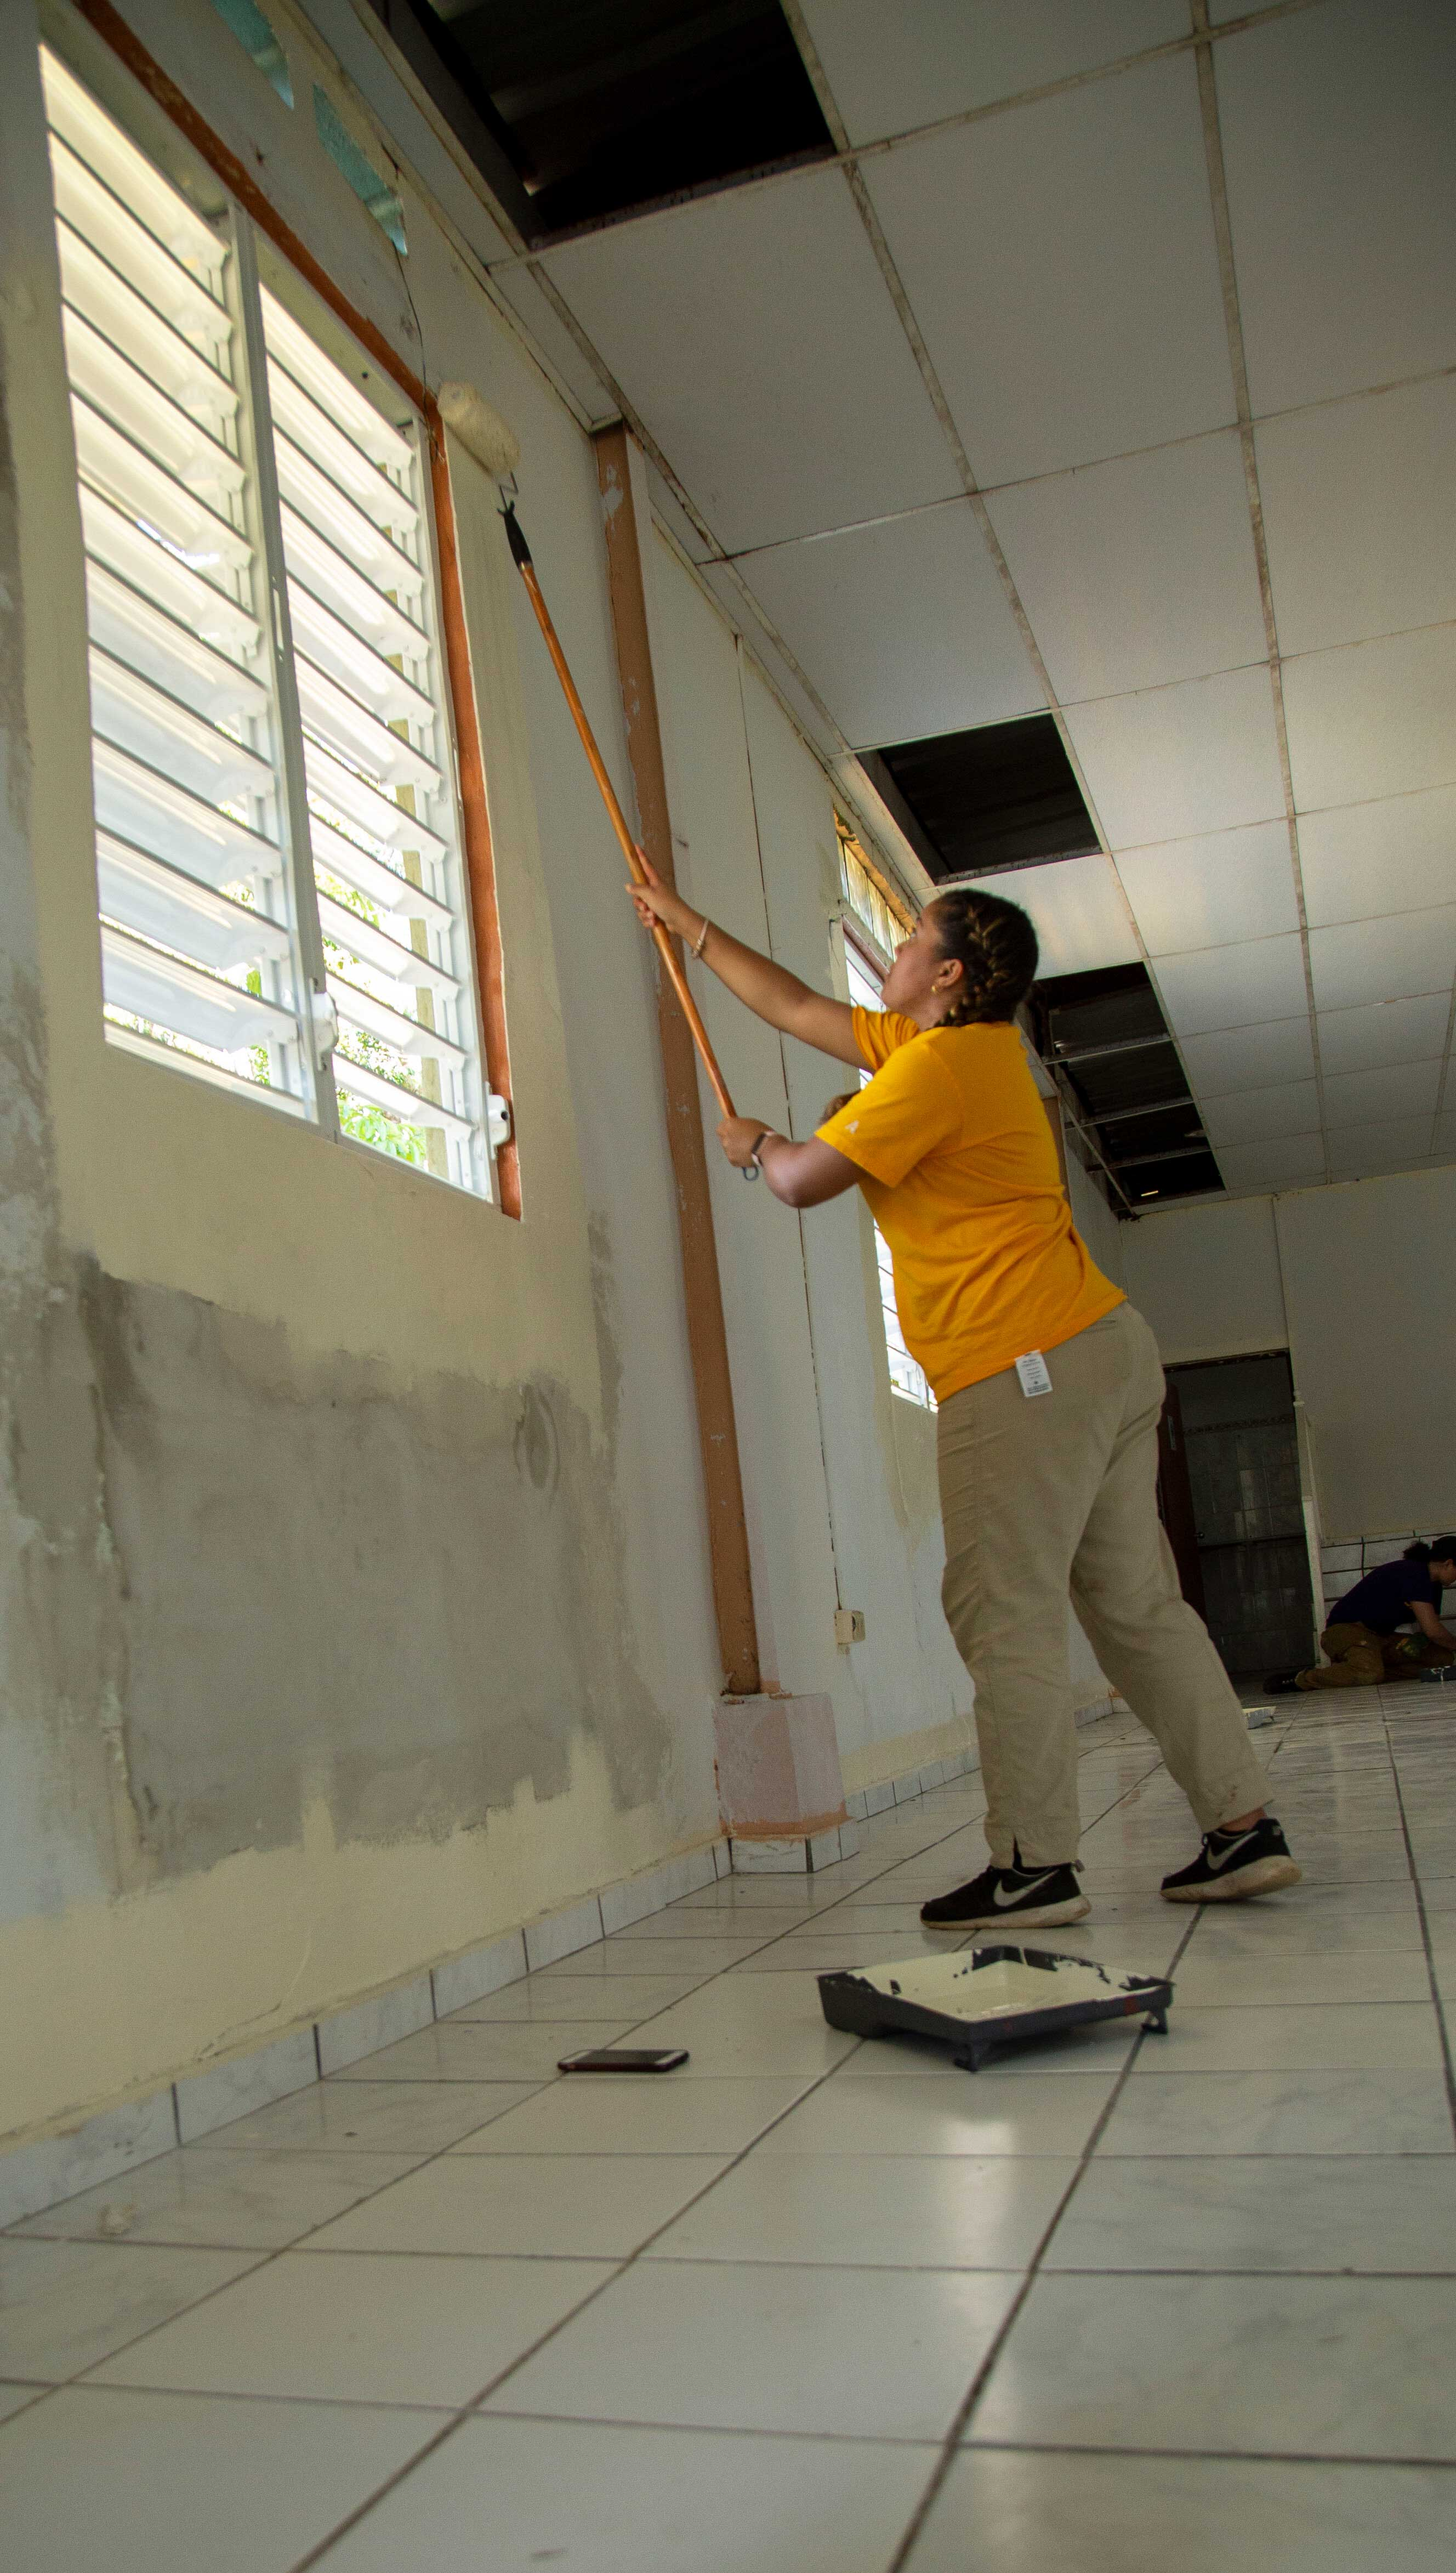 Student repainting a community center in Bayamon, Puerto Rico that was damaged by Hurricane Maria.